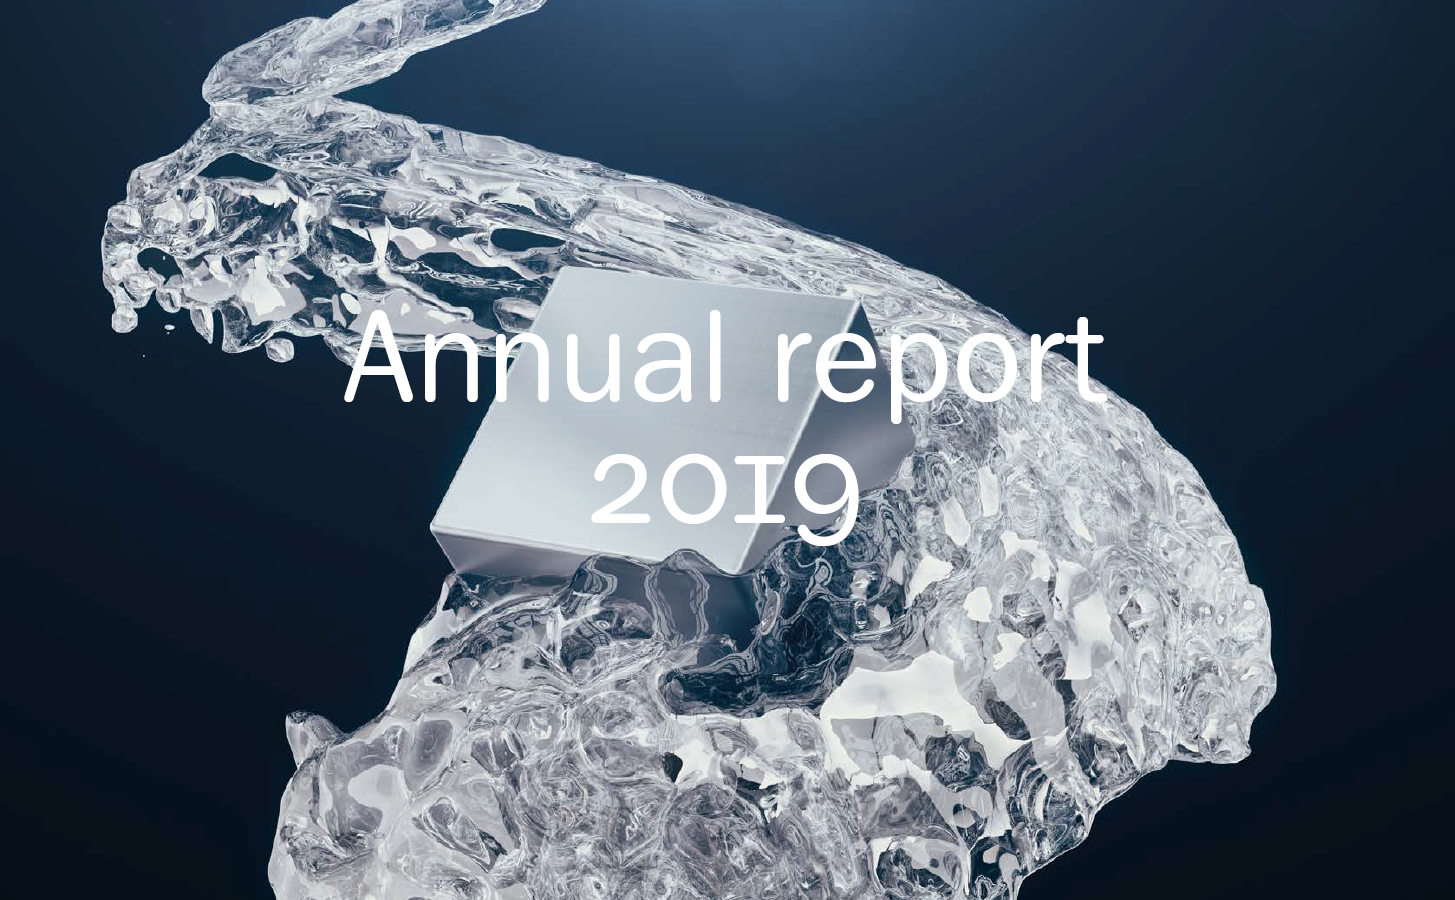 Annual report 2019 cover